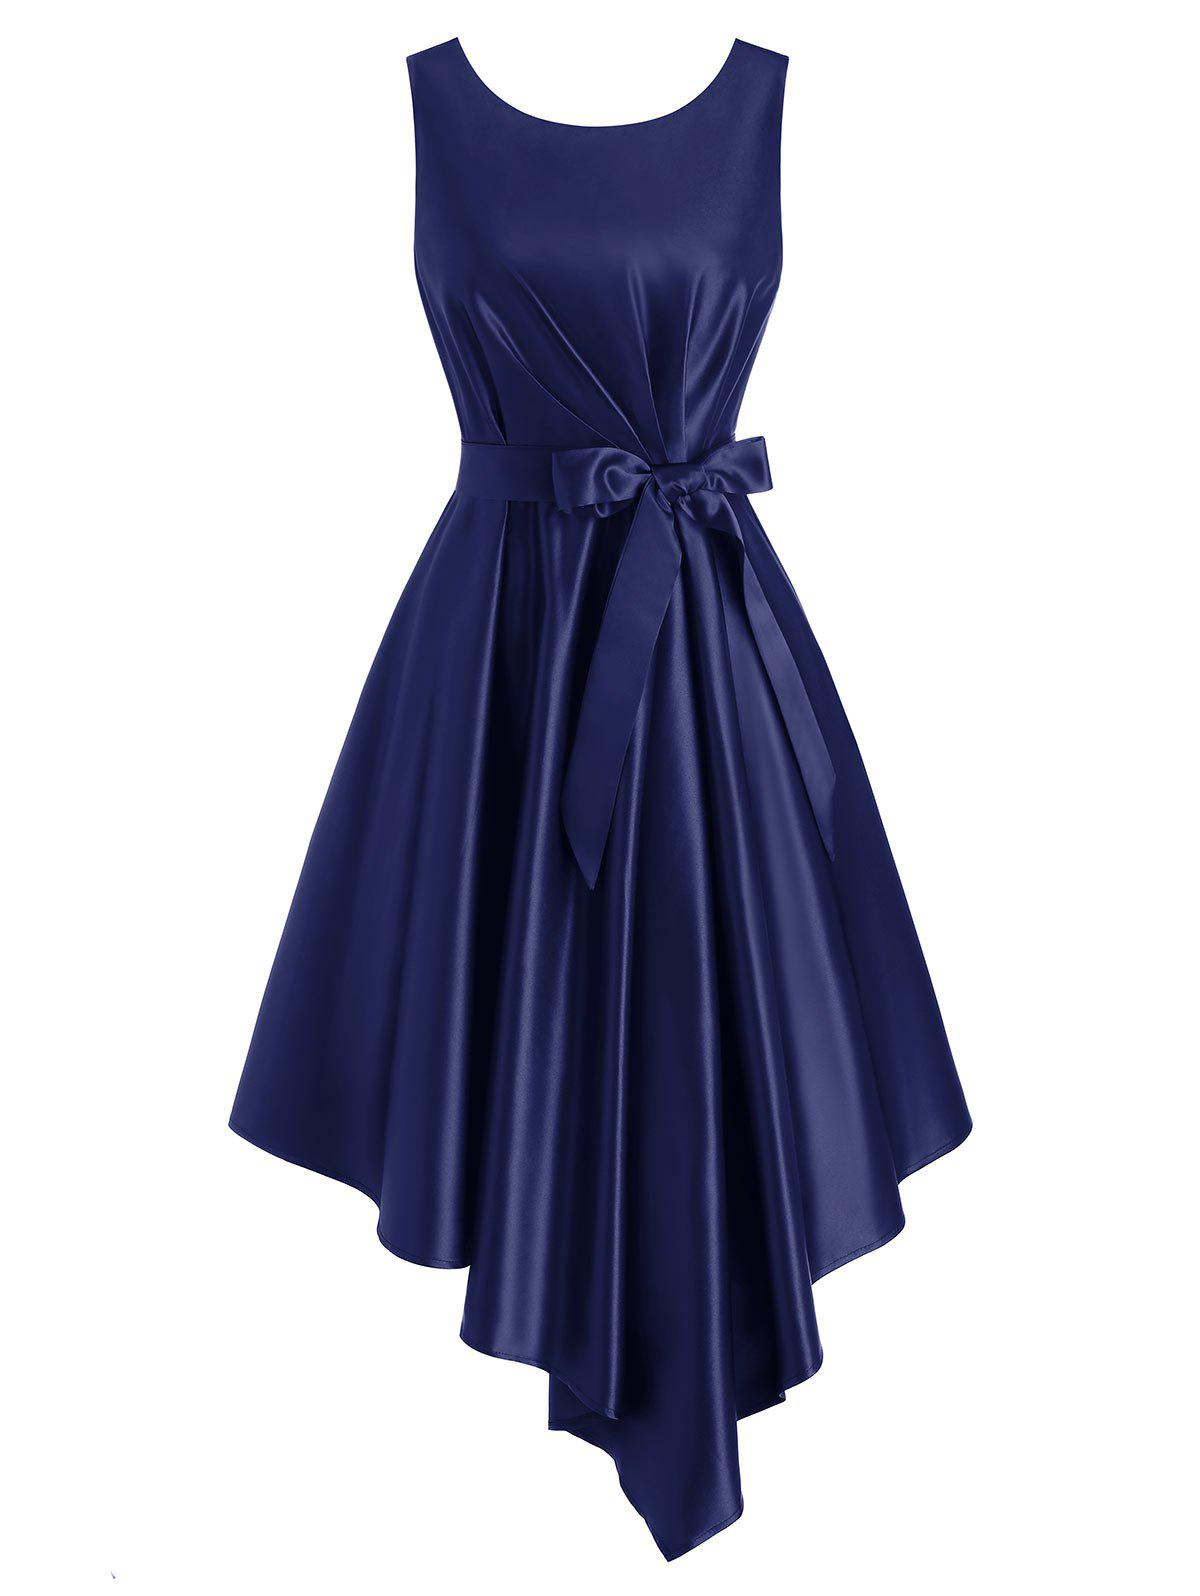 Belted Pleated Waisted Sleeveless Asymmetrical Dress - DEEP BLUE S